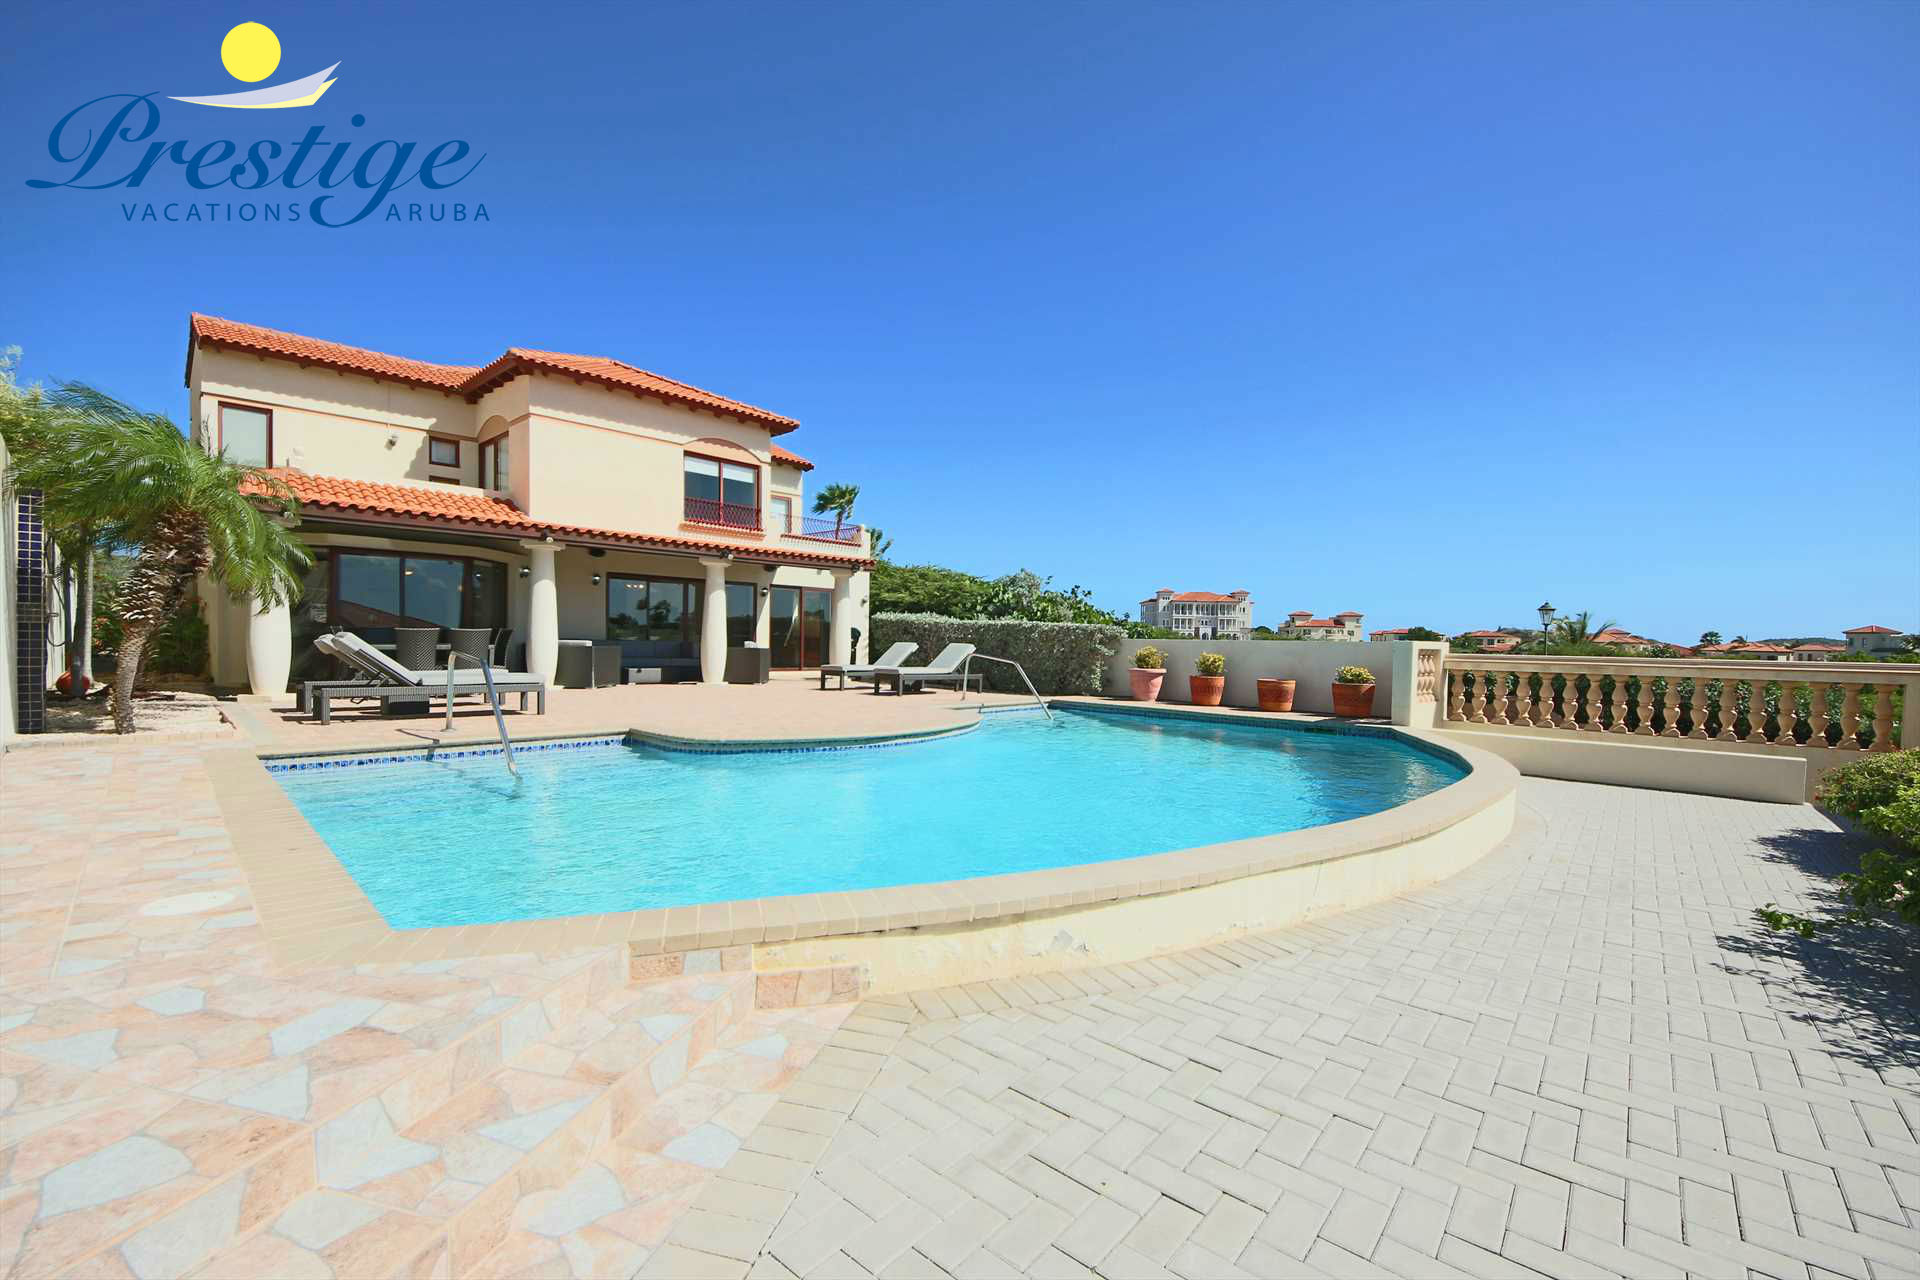 Your outdoor haven with a private swimming pool